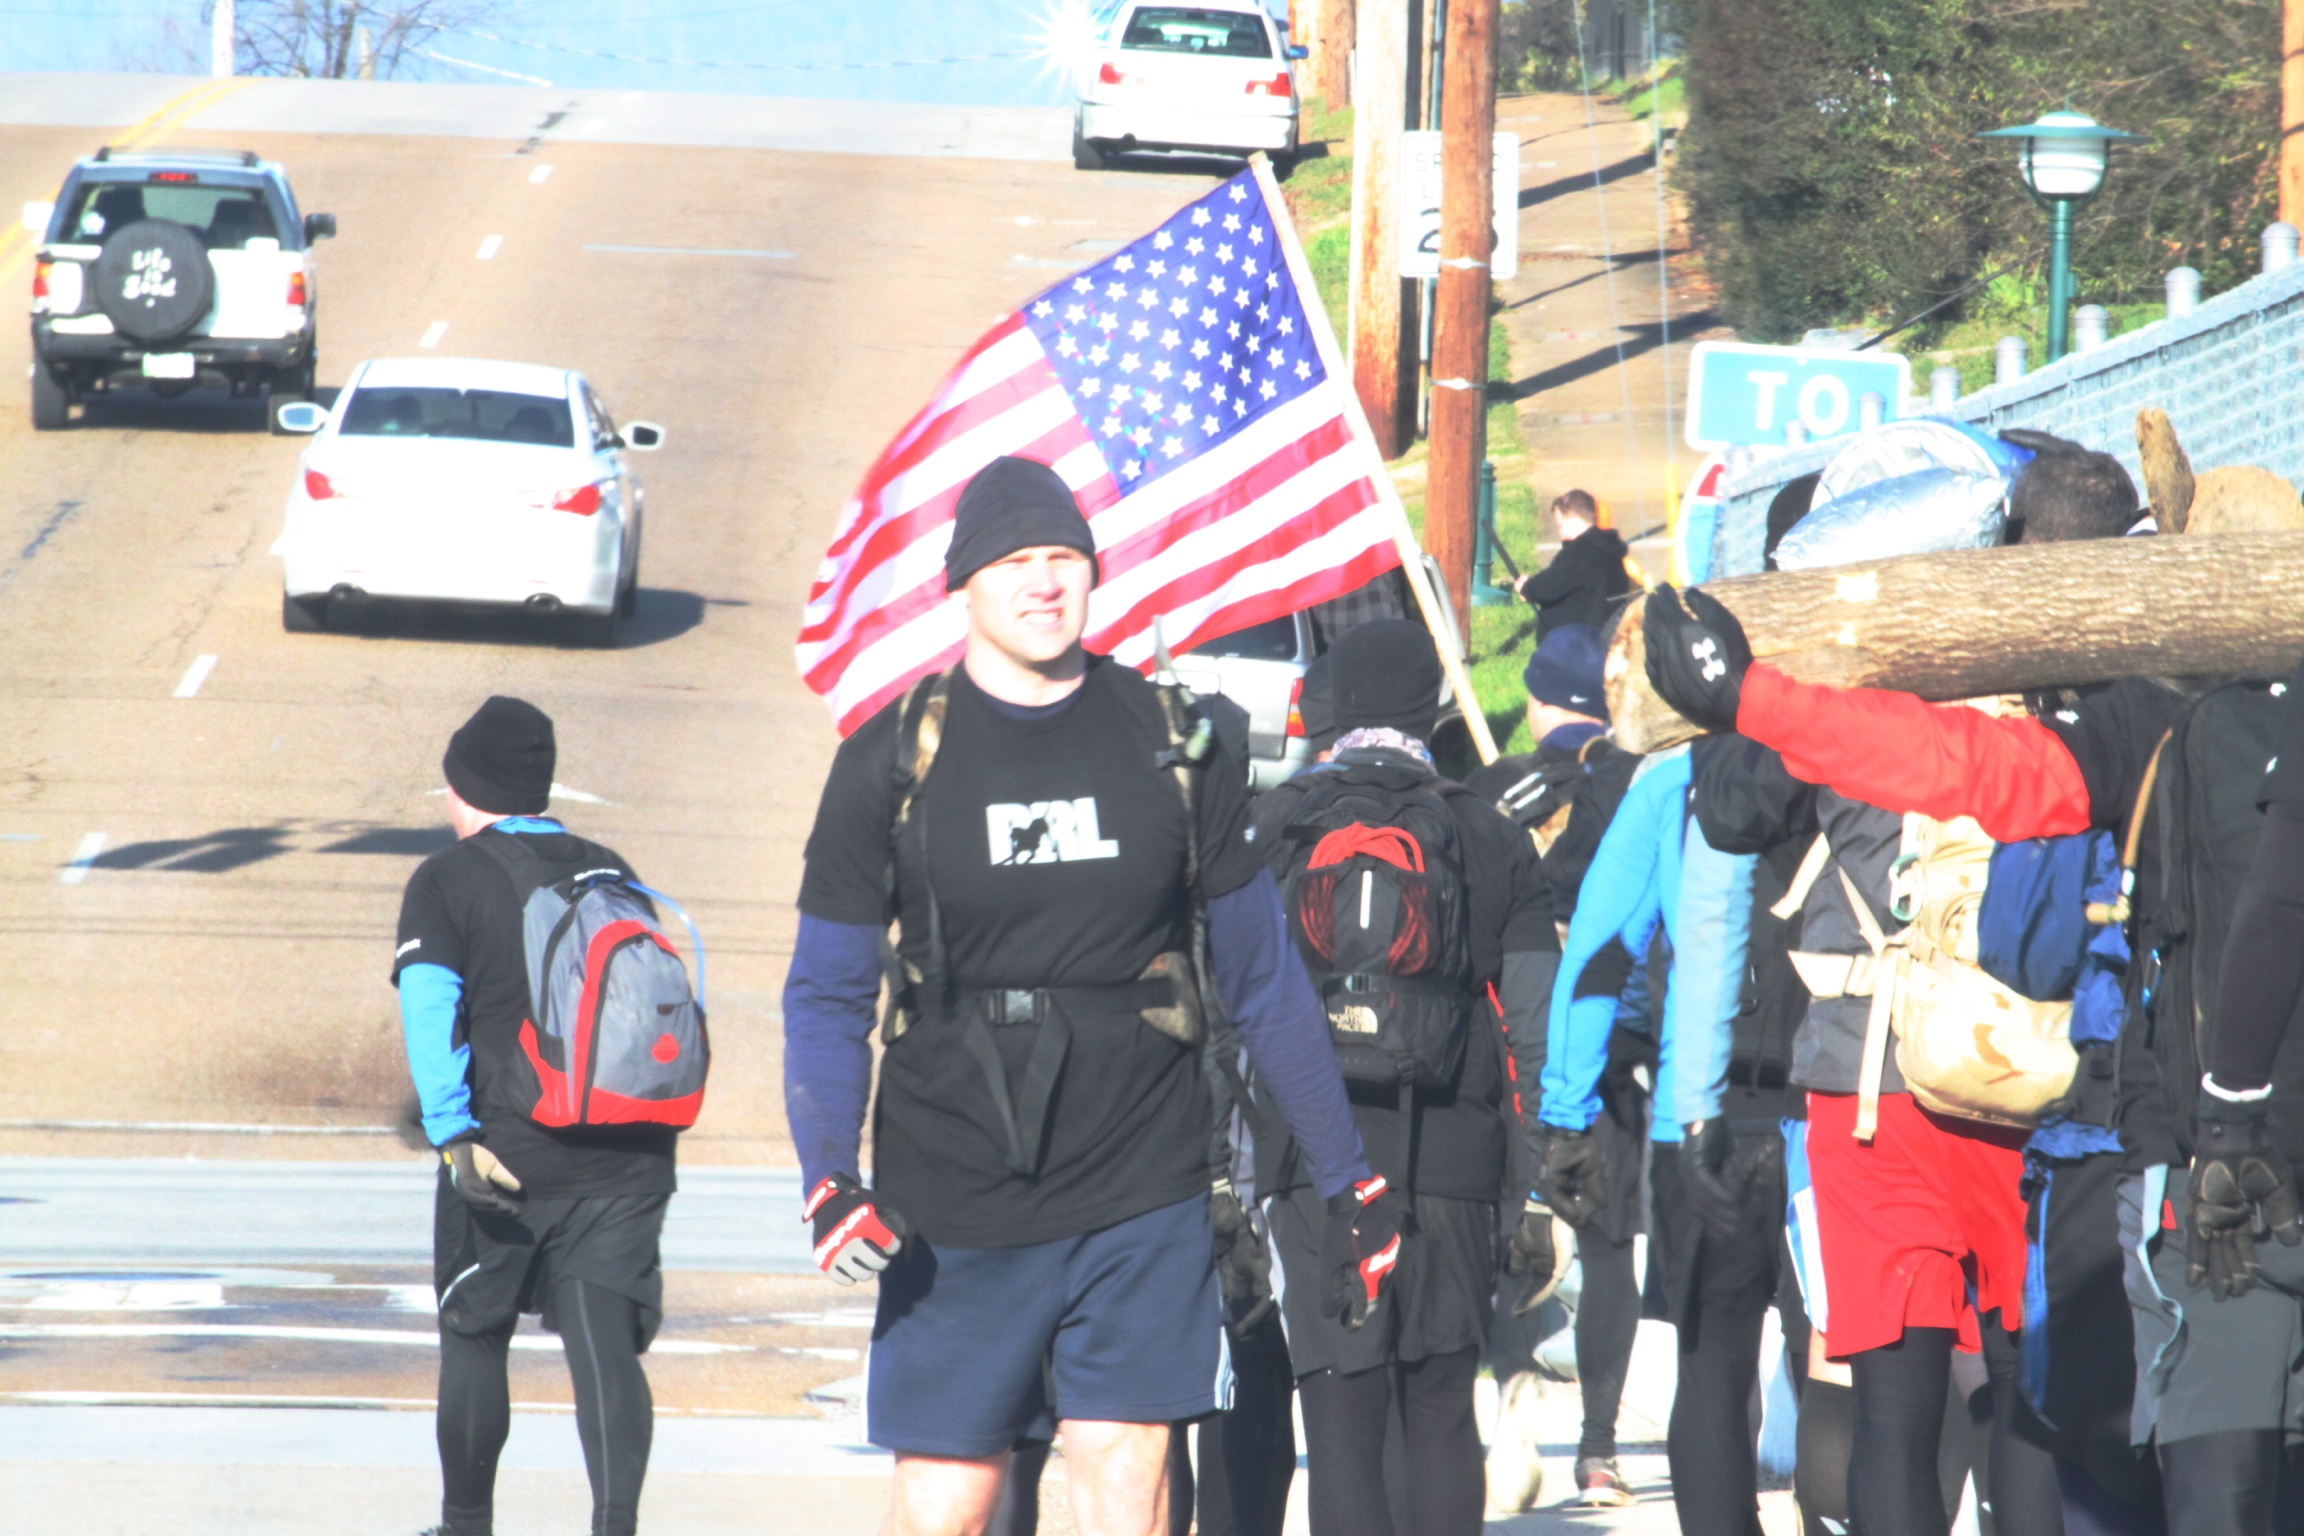 Our Team in Goruck class 404